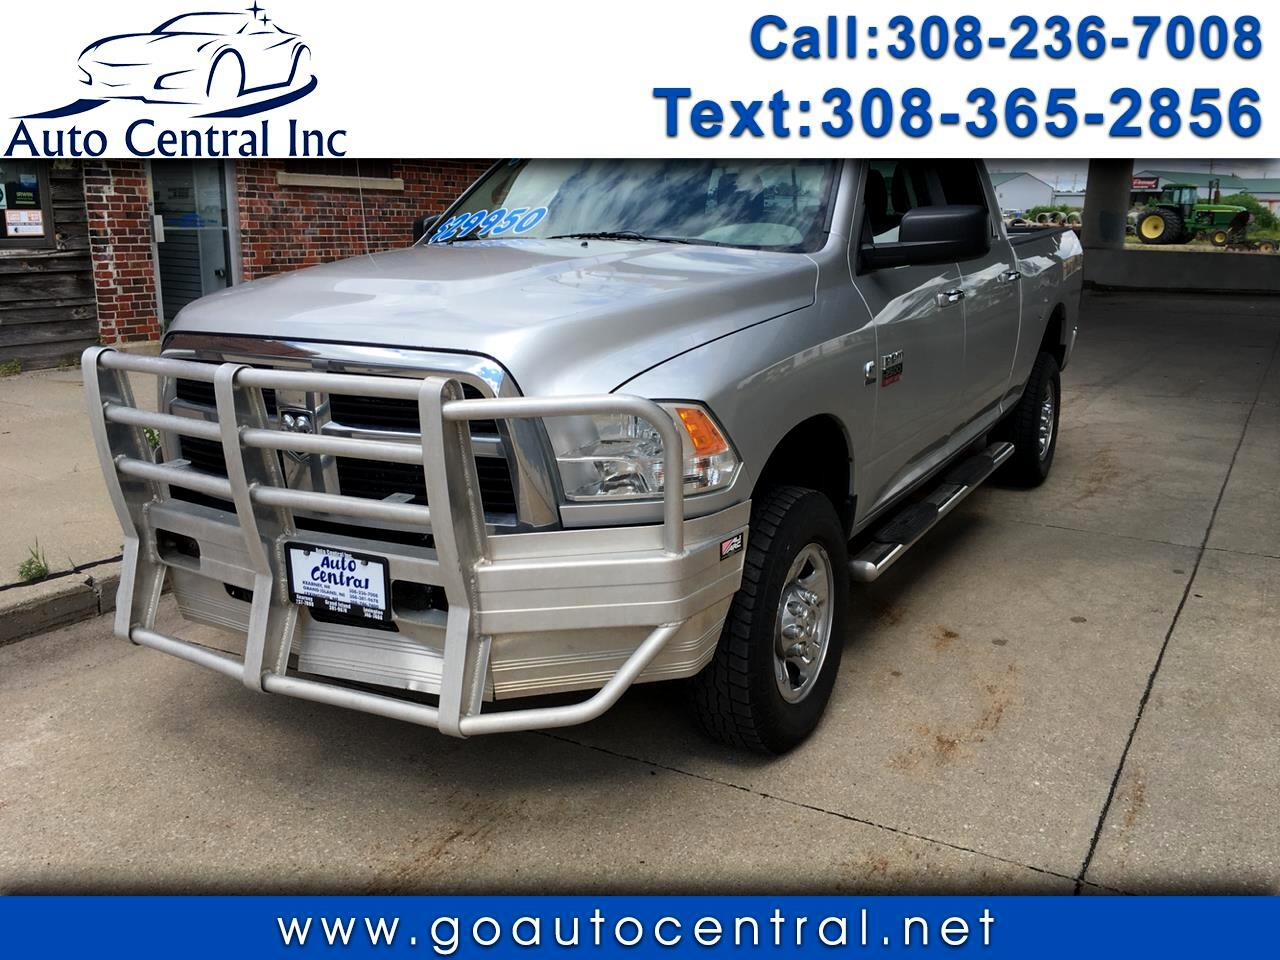 2012 Dodge 3/4 Ton Trucks